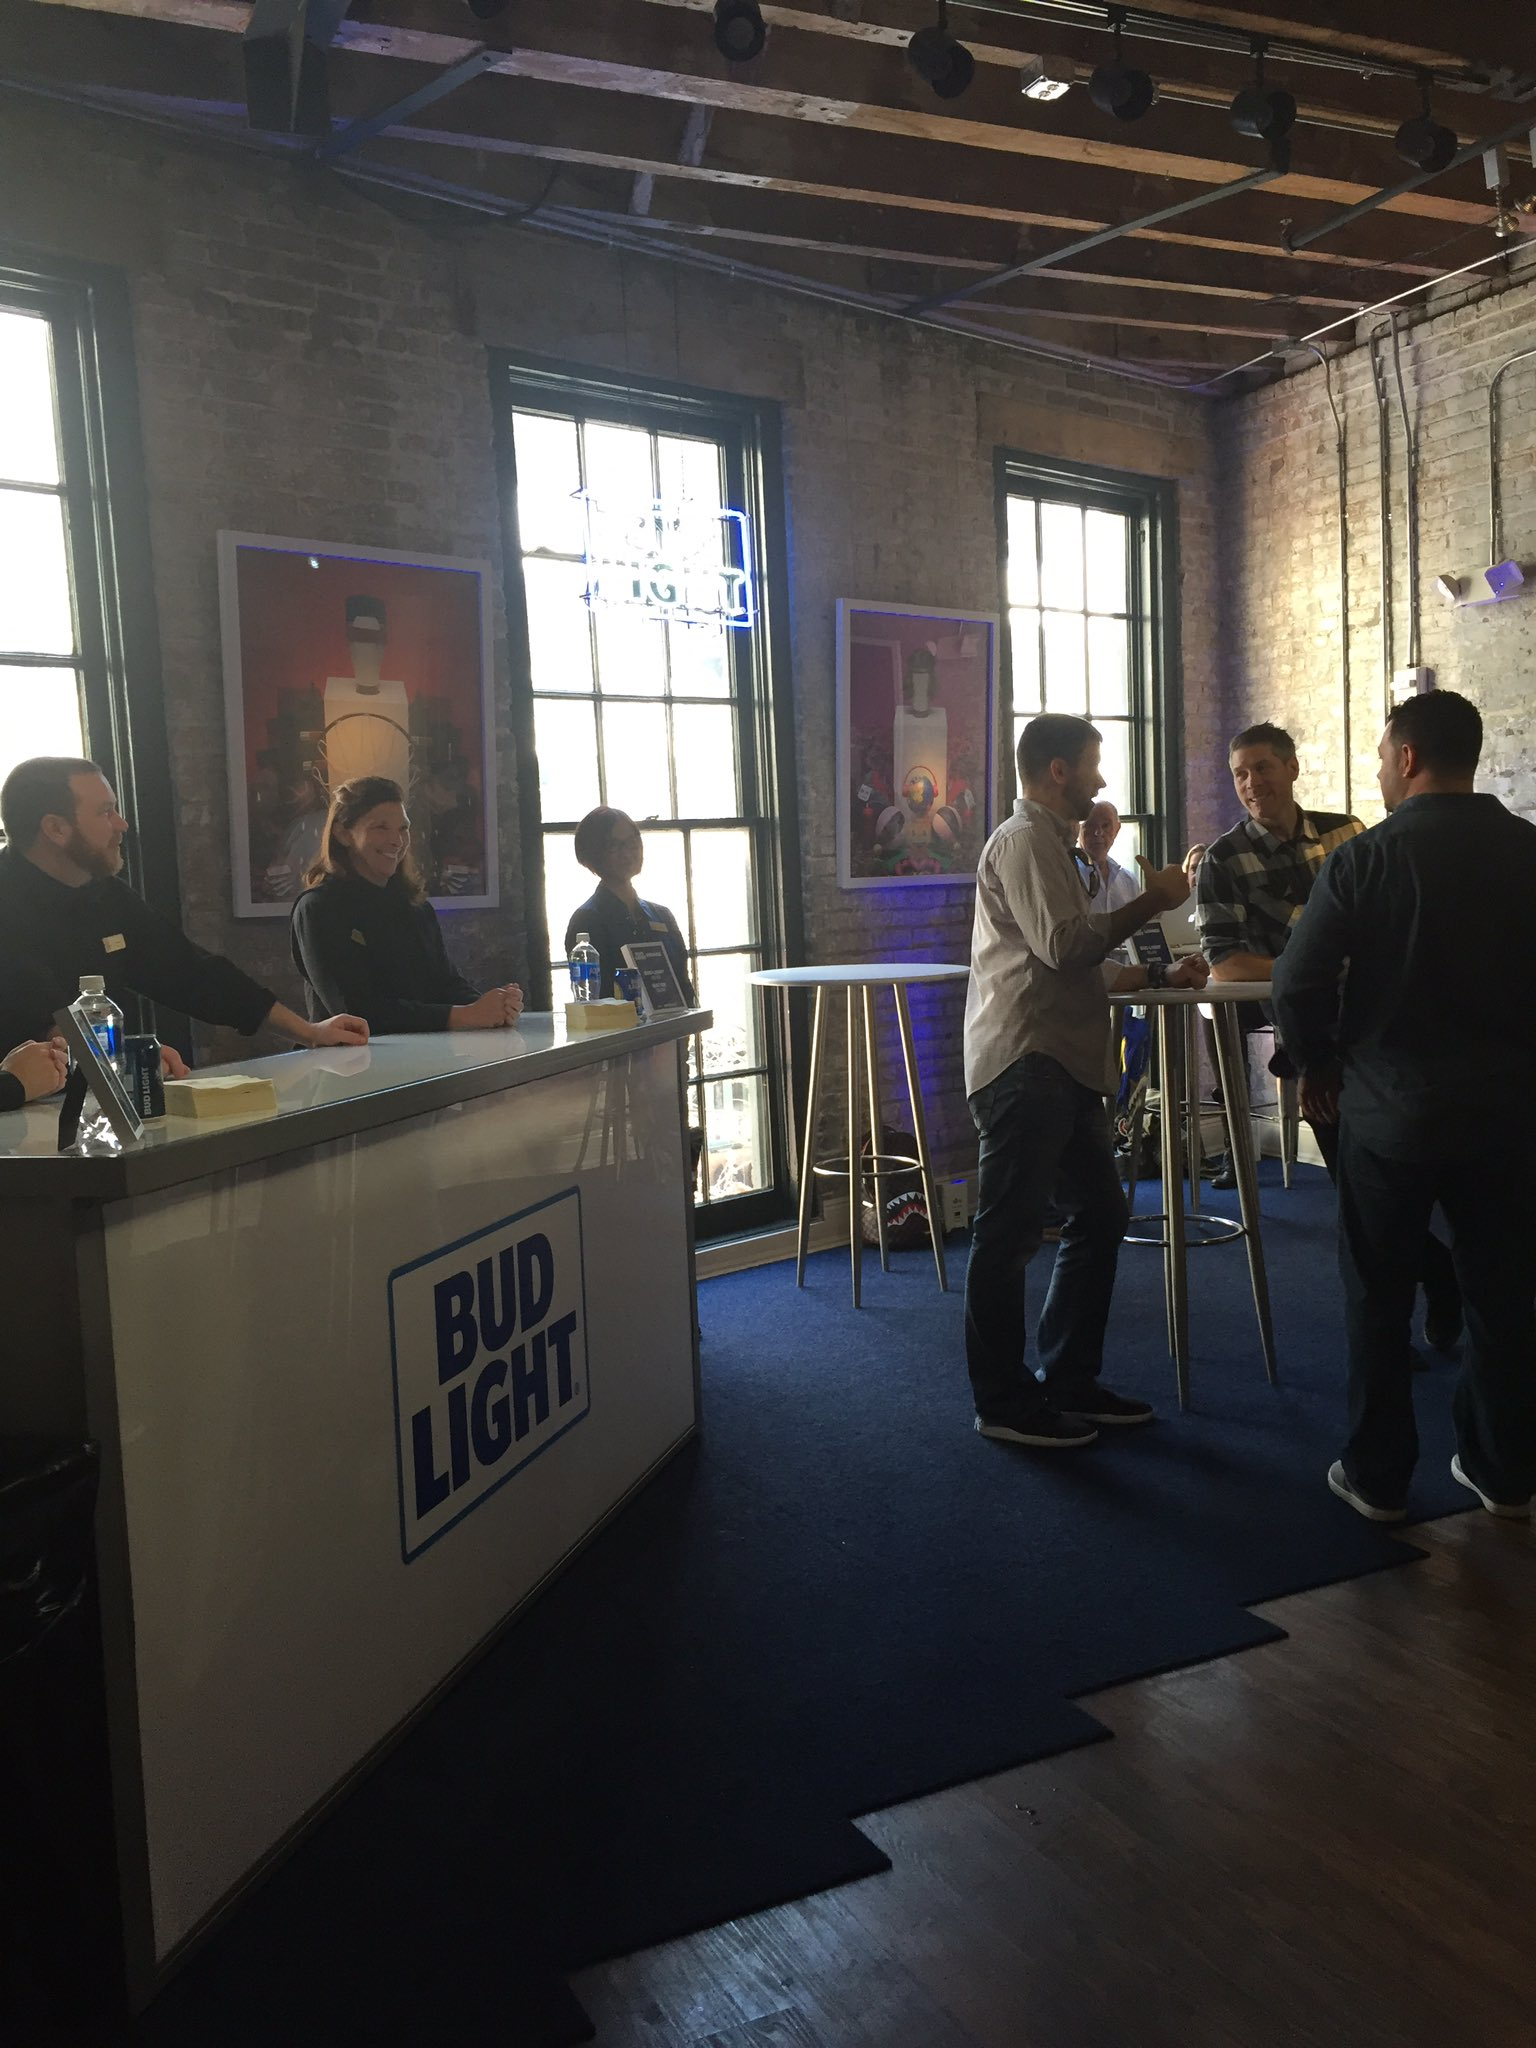 Come socialize this #NBAAllStar Sunday with @budlight at #NBACrossover https://t.co/wiVnR6mNiy